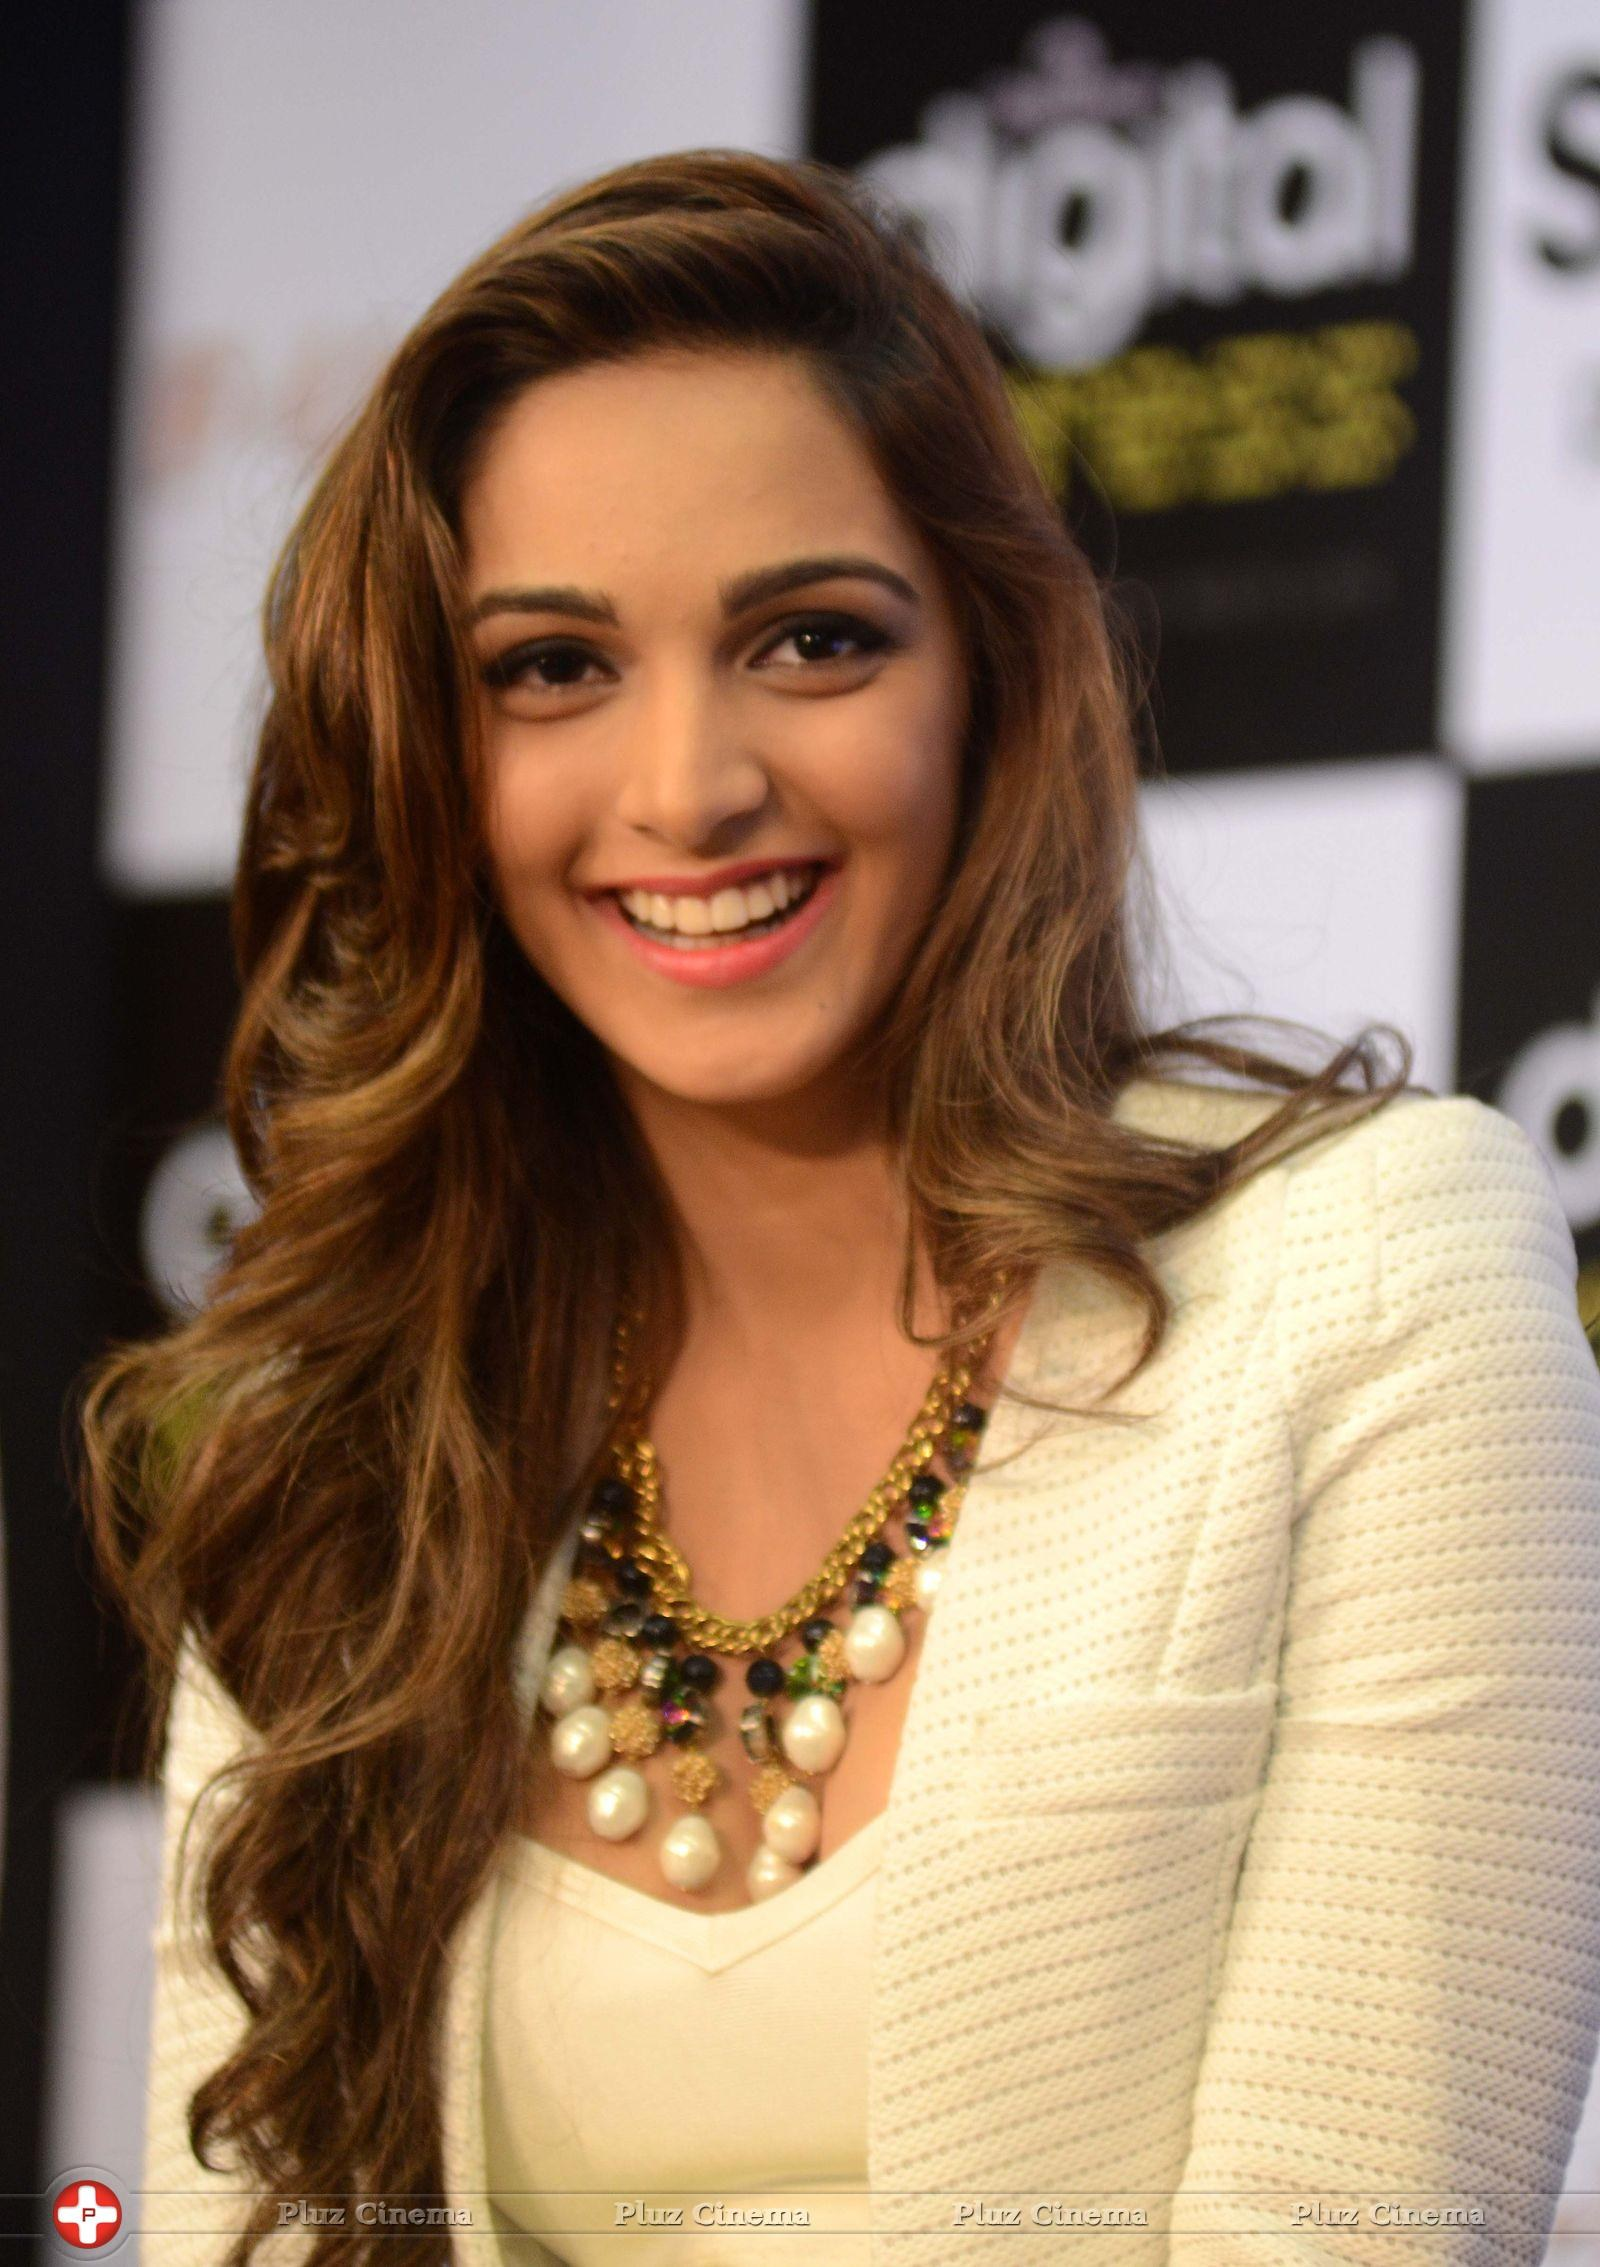 'Salman sir dated my mausie Shaheen long back' : Kiara Advani